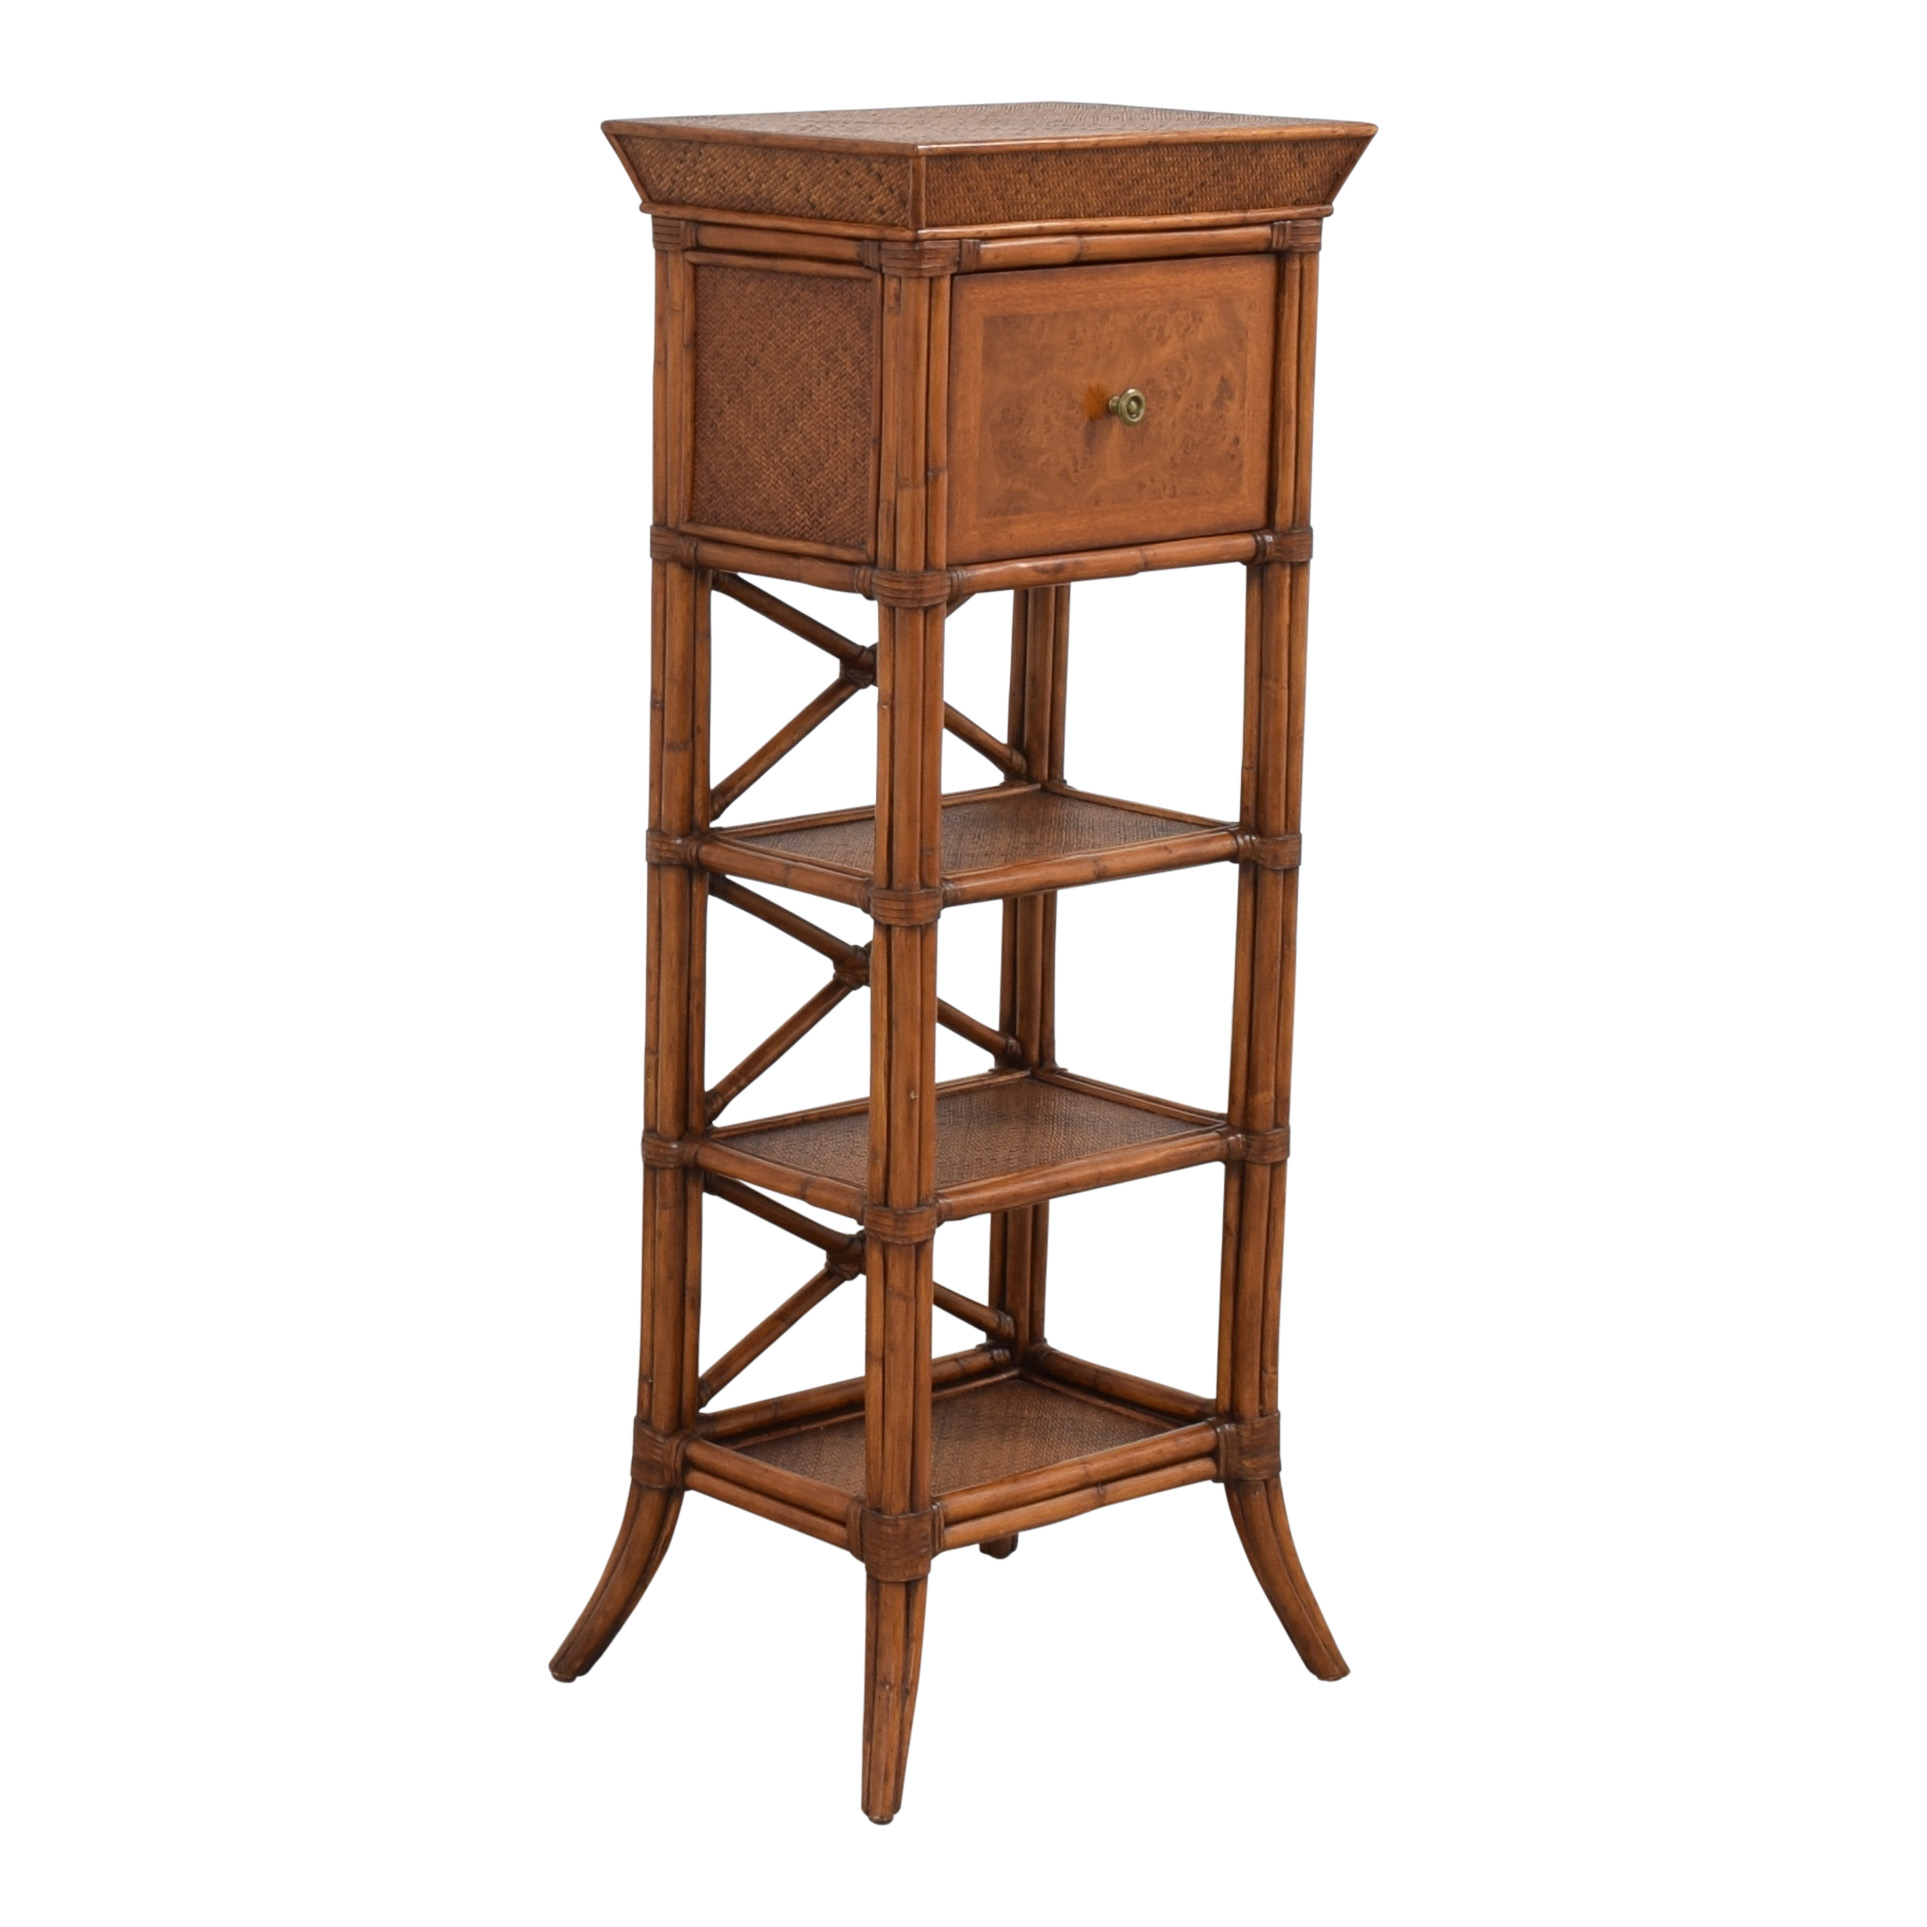 shop  Bamboo Style Storage Tower online